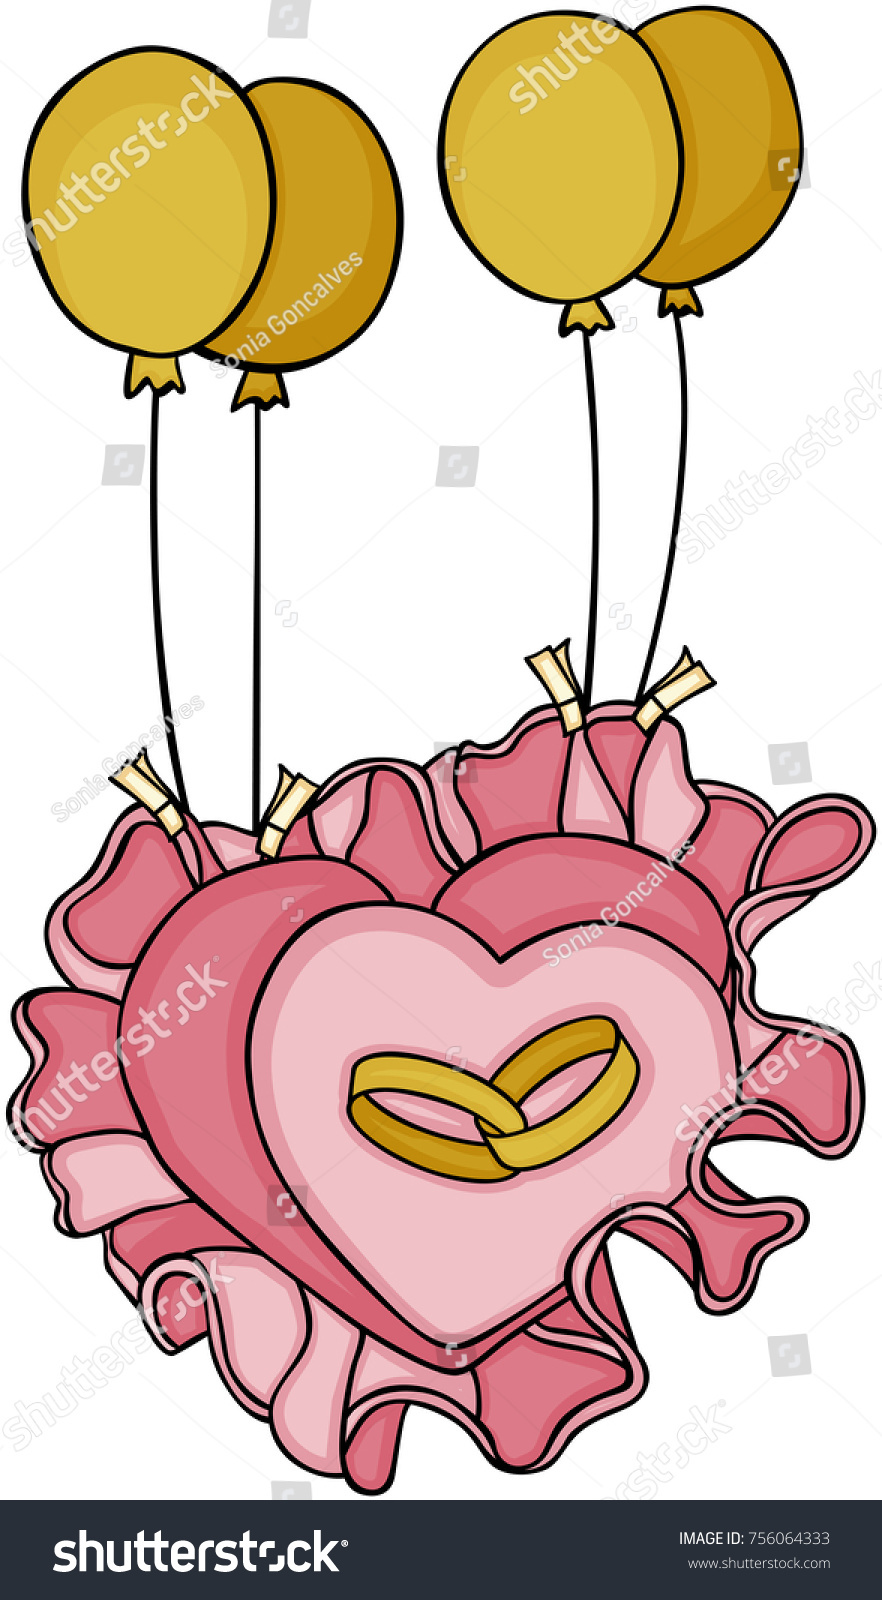 Wedding Rings On Heart Shaped Pillow Stock Vector 756064333 ...